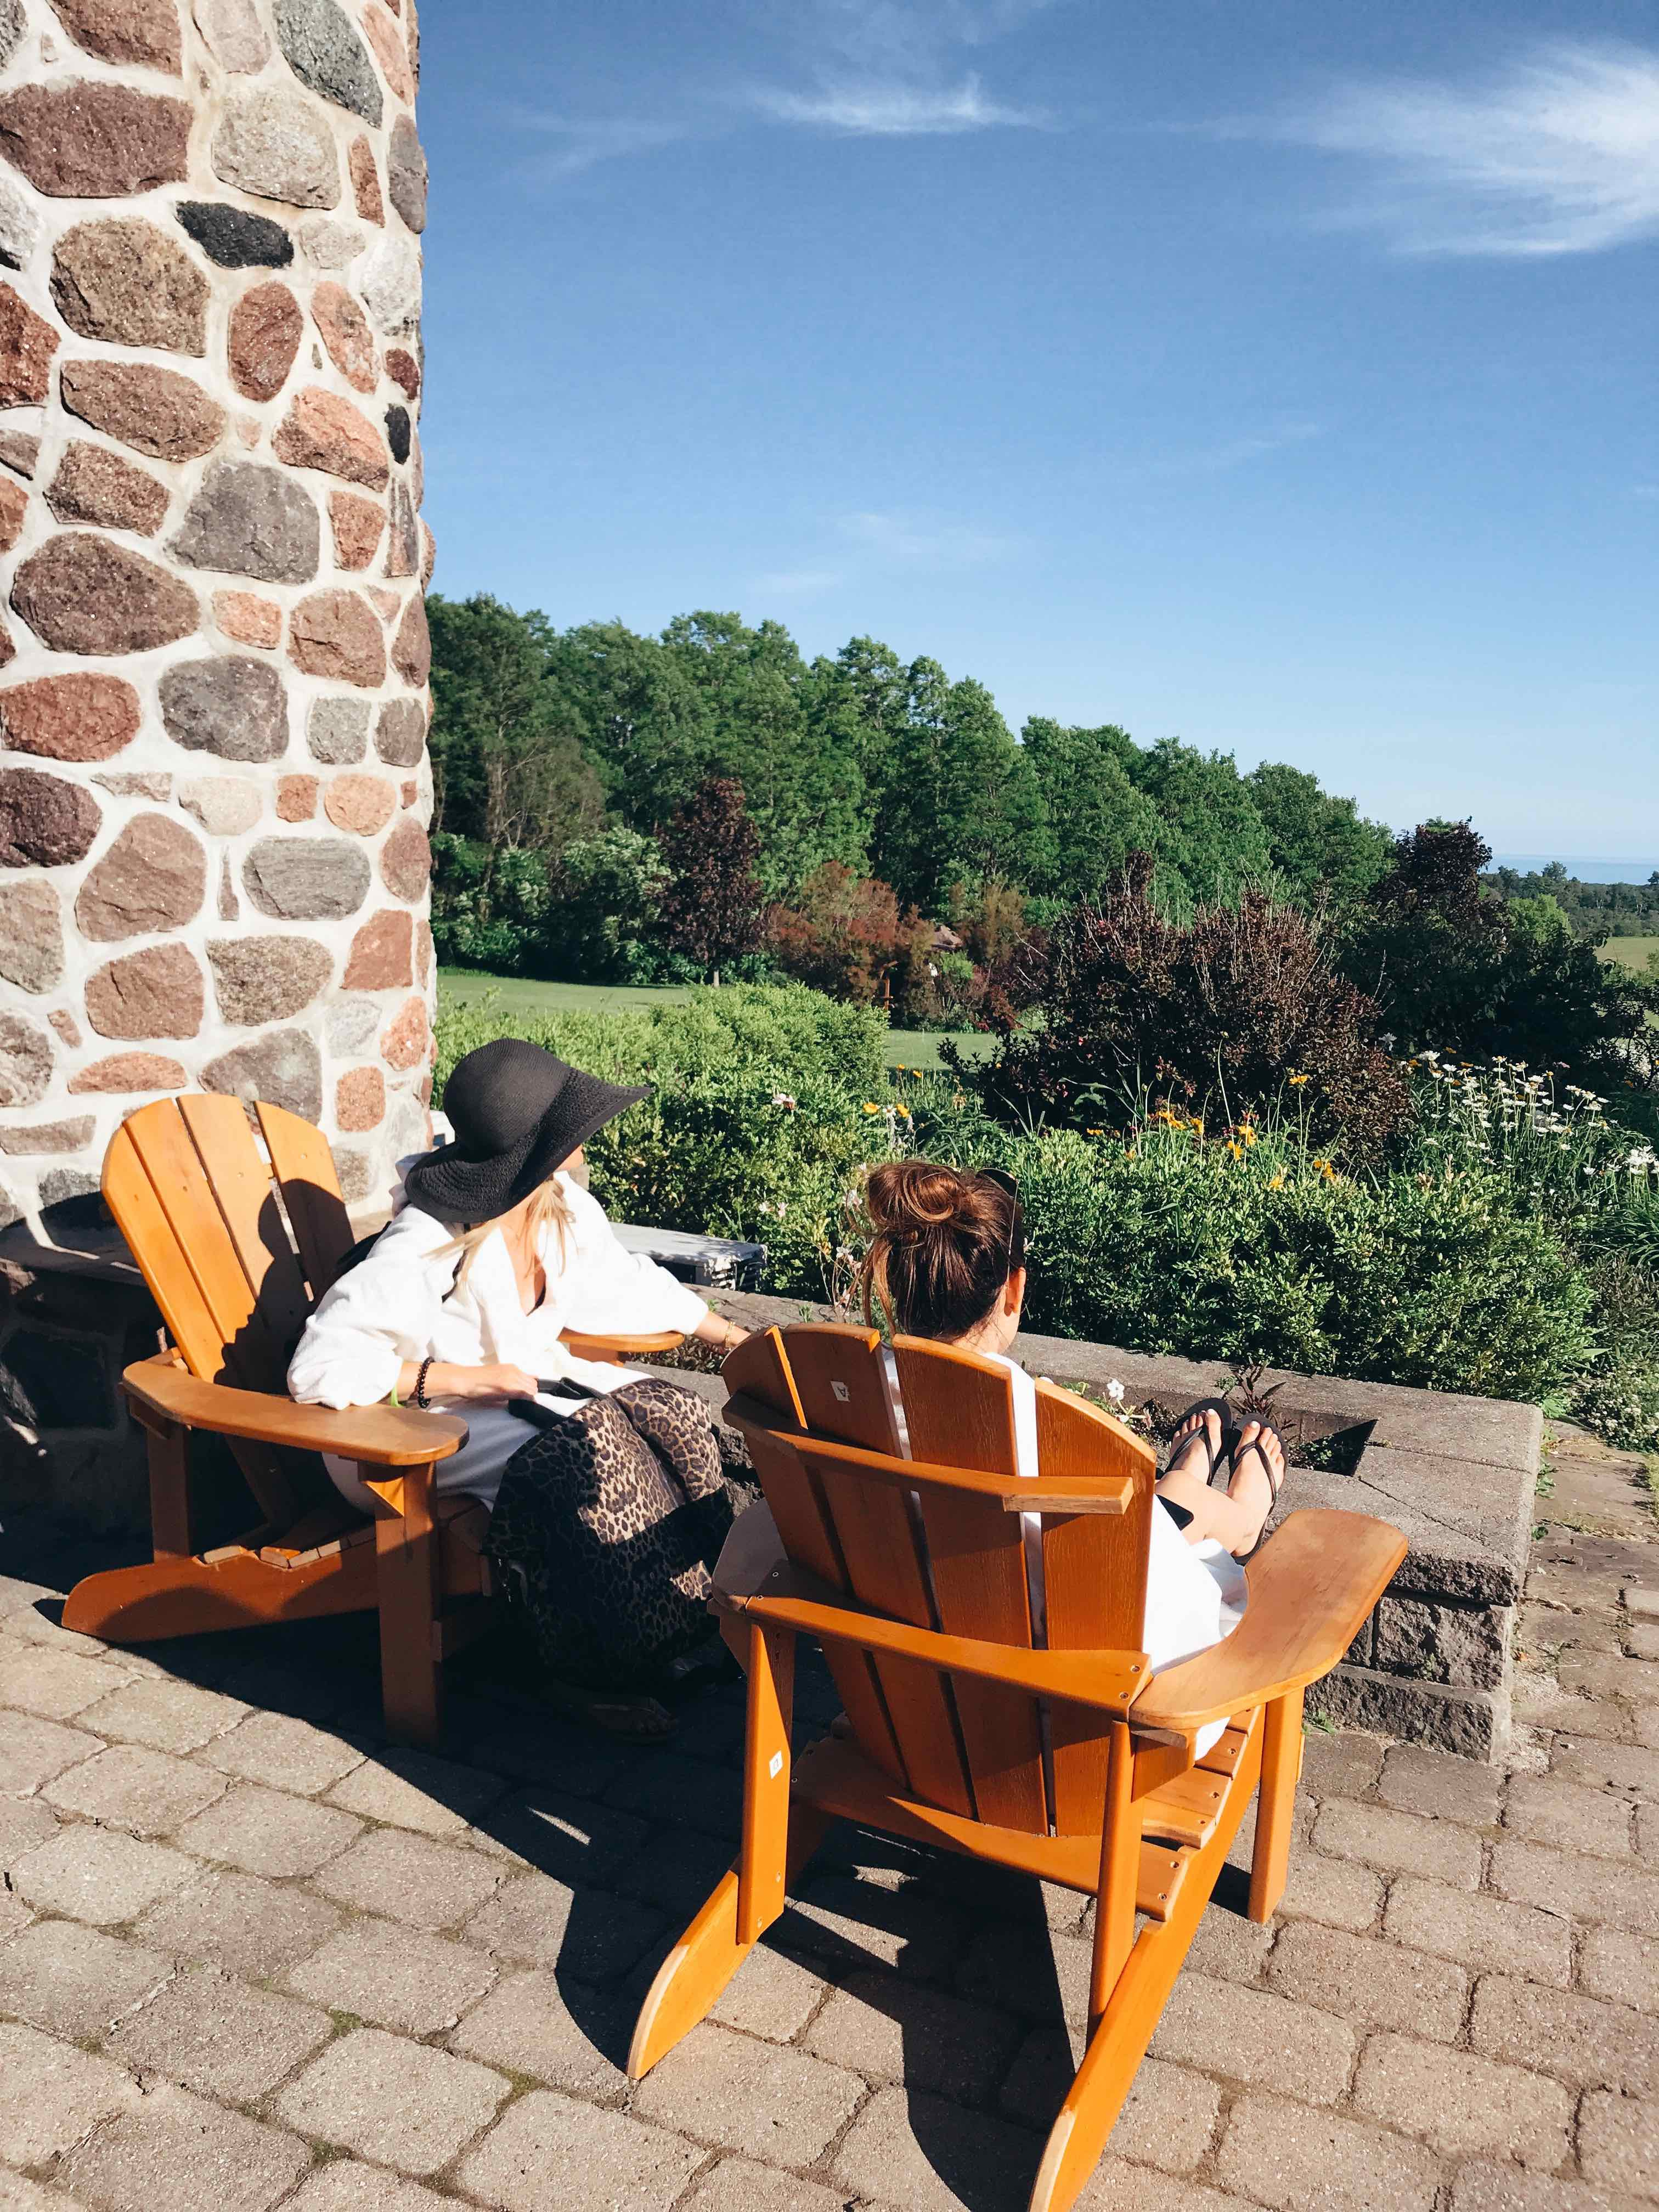 two women at ste annes spa sitting on orange lawn chairs looking at the trees and scenery